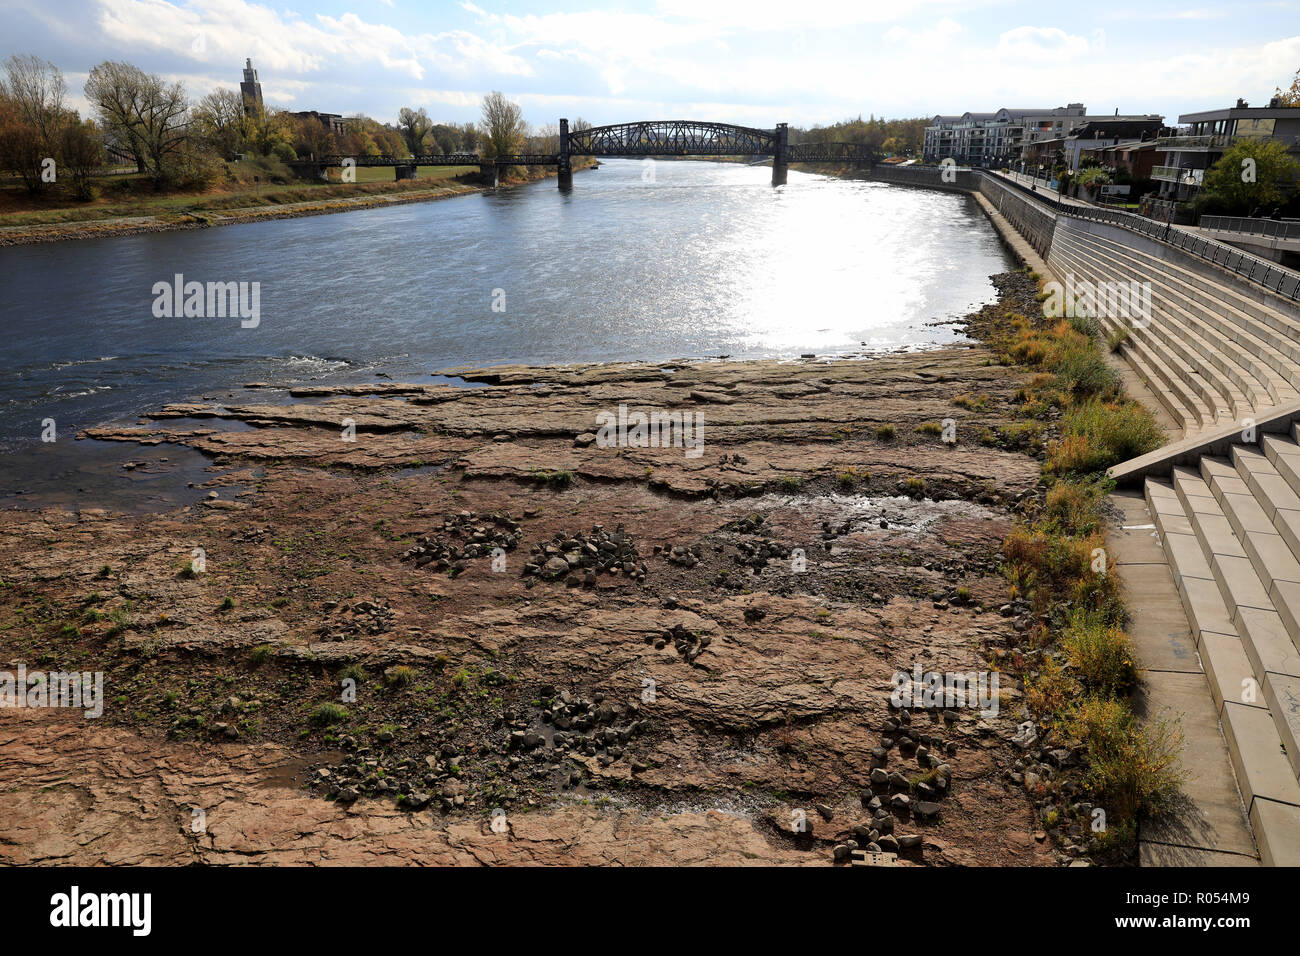 Magdeburg, Germany. 31st Oct, 2018. Despite the last rainy days, the Magdeburger Domfelsen shows its full extent. This year the Elbe River has its lowest water level for over 80 years and a navigation is still not feasible. Credit: Peter Gercke/dpa-Zentralbild/ZB/dpa/Alamy Live News Stock Photo